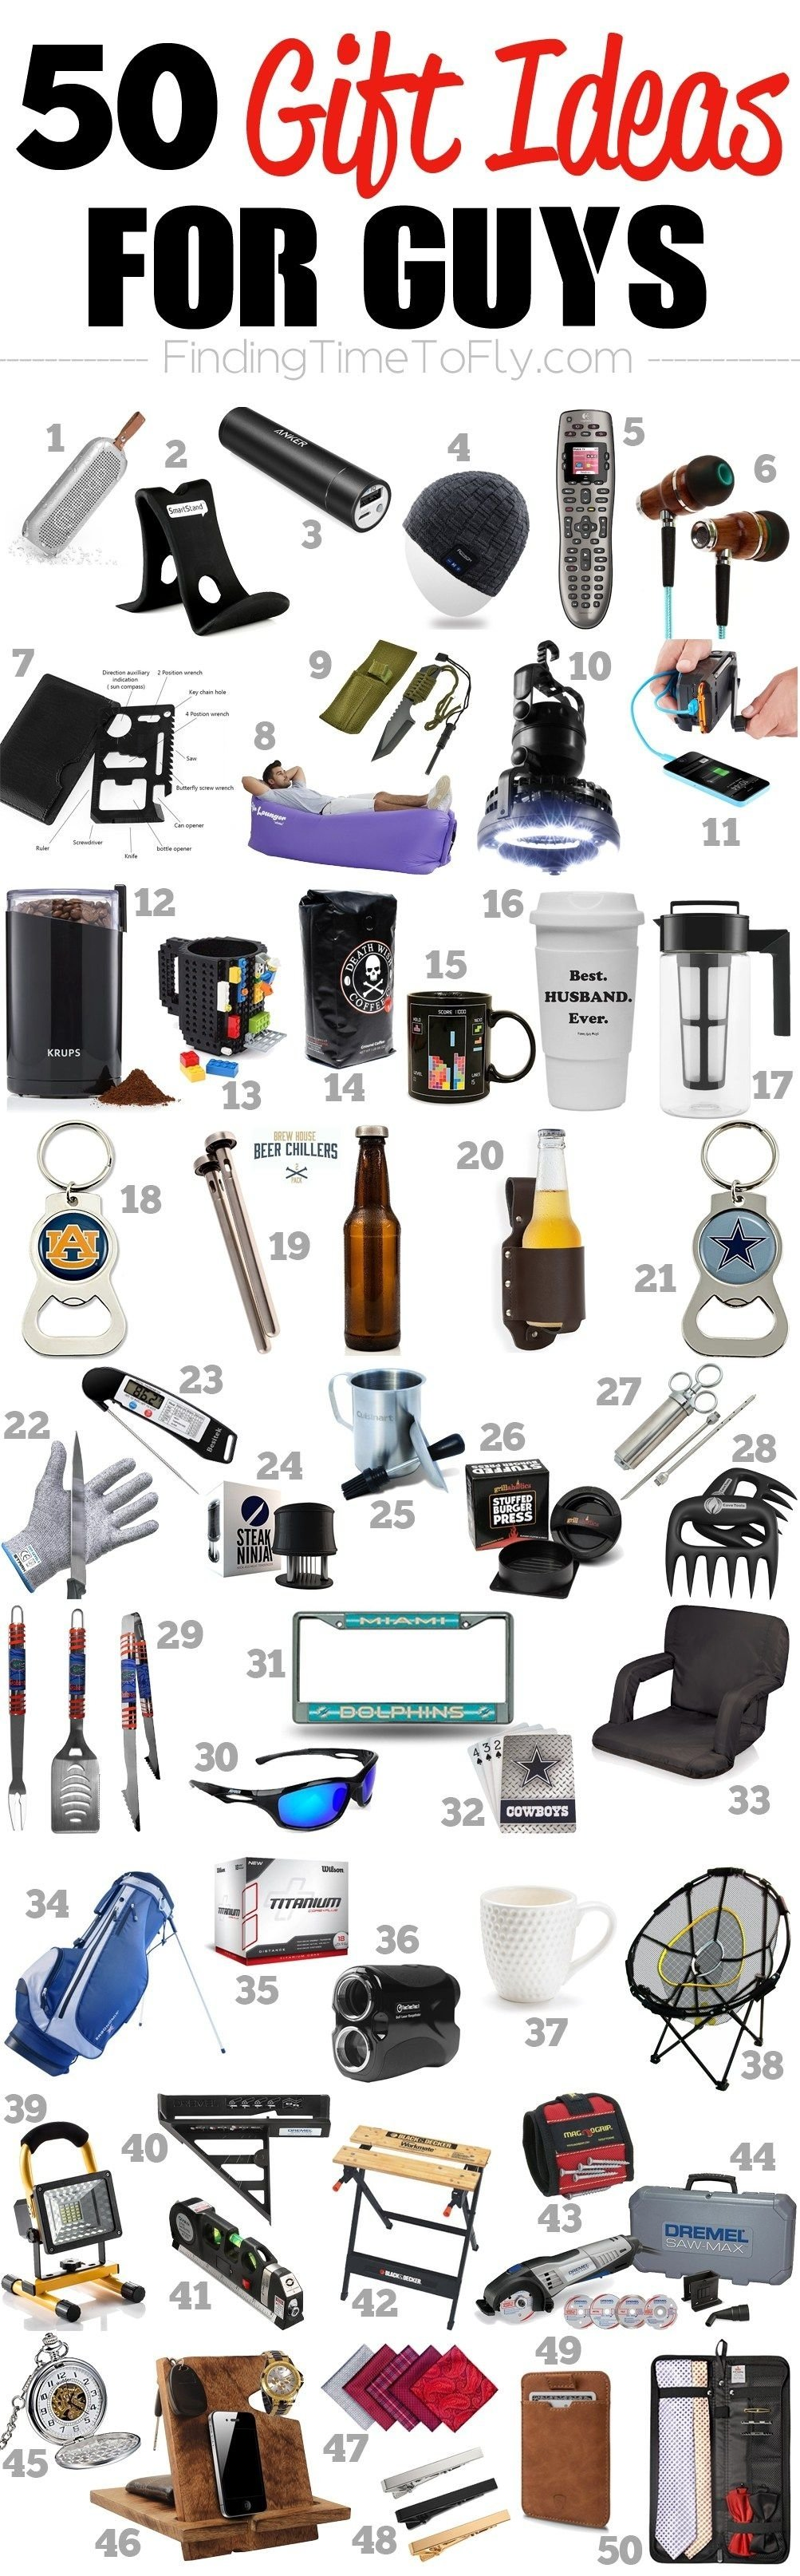 50 gifts for guys for every occasion | outdoor gear, christmas gifts